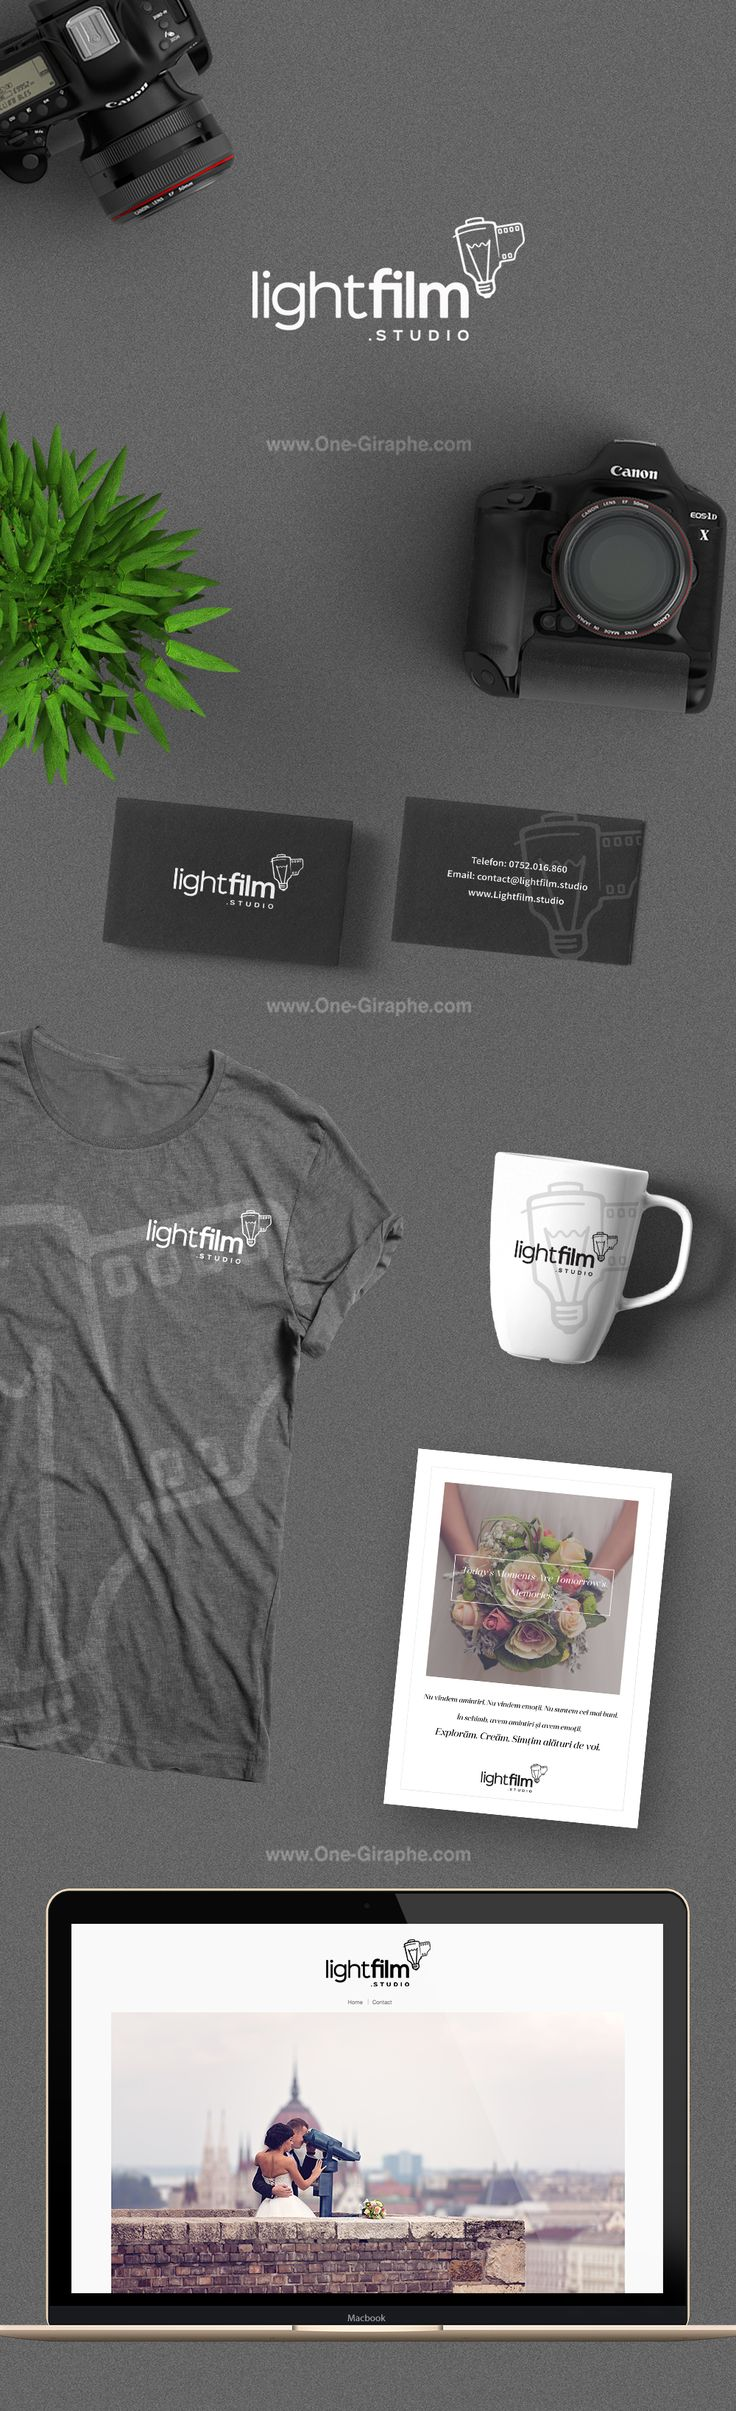 Brand Identity for LightFilm Studio http://www.one-giraphe.com/prev.php?c=189 Project in collaboration with Vasile Petrice ‪#‎logo‬ ‪#‎logodesign‬ ‪#‎photography‬ #behance #photographer #brandidentity #designer #logodesigns #etsy #dribbble